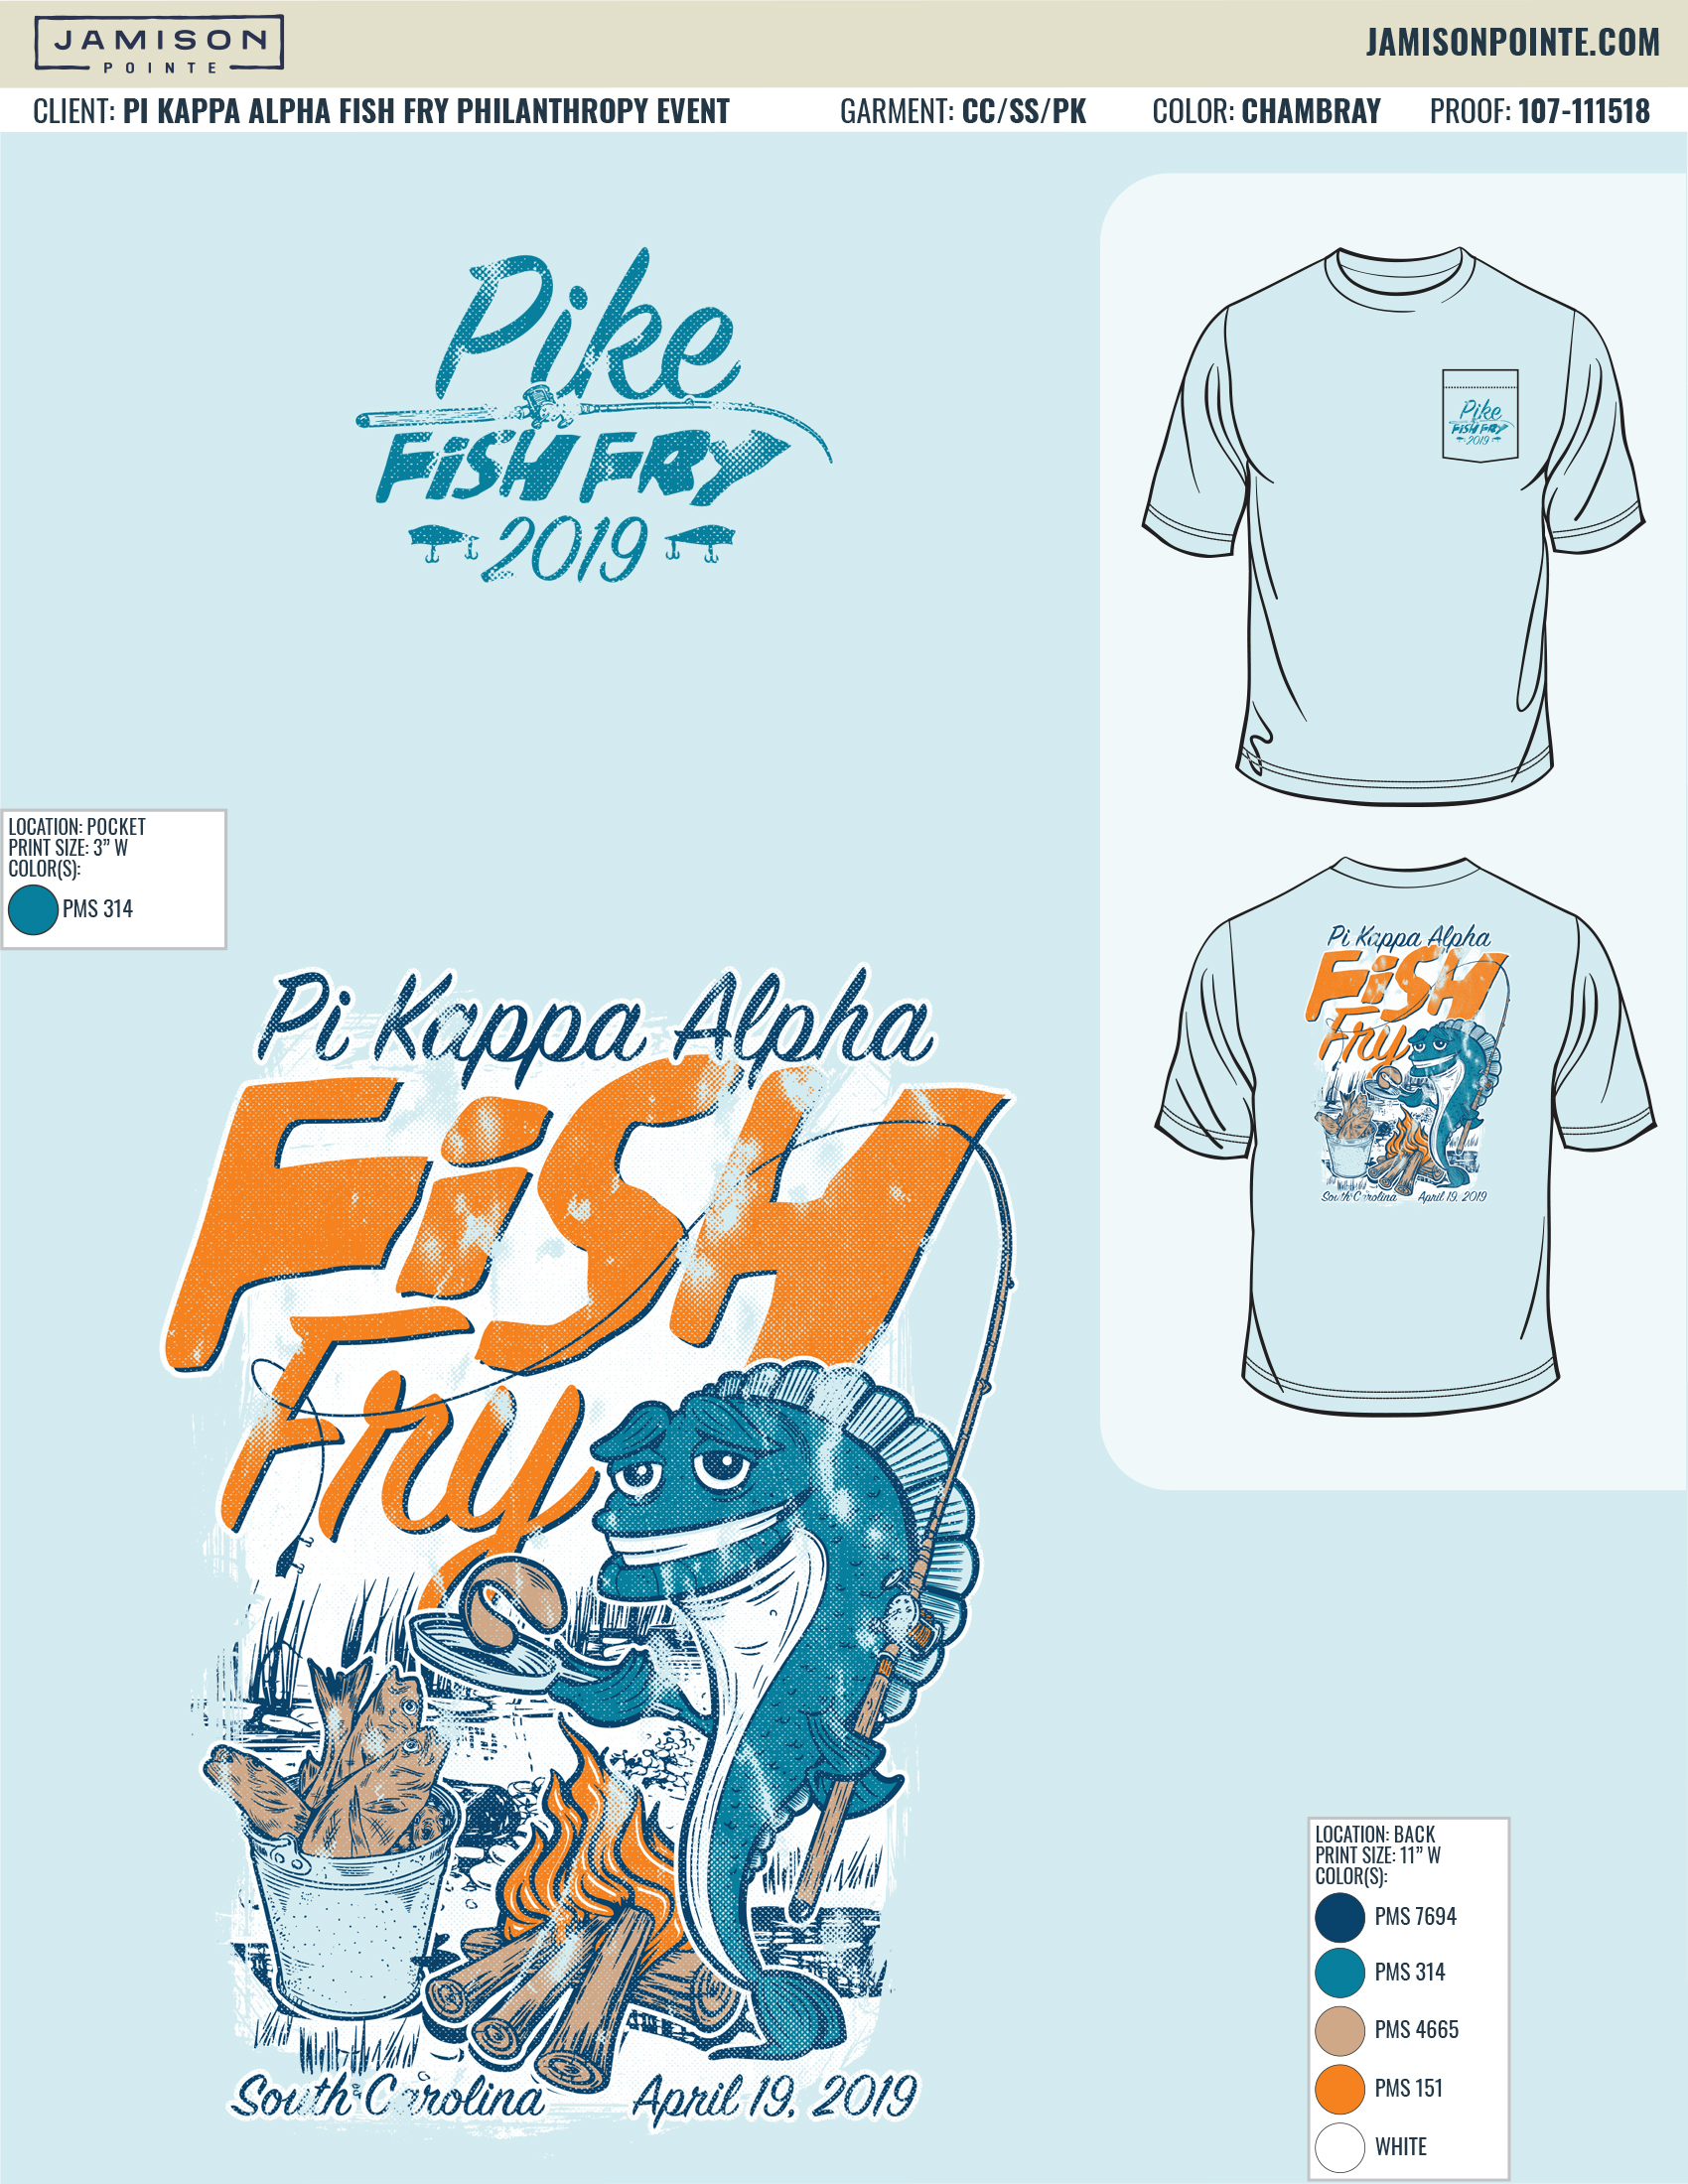 107-111518 Pi Kappa Alpha Fish Fry Philanthropy Event.jpg